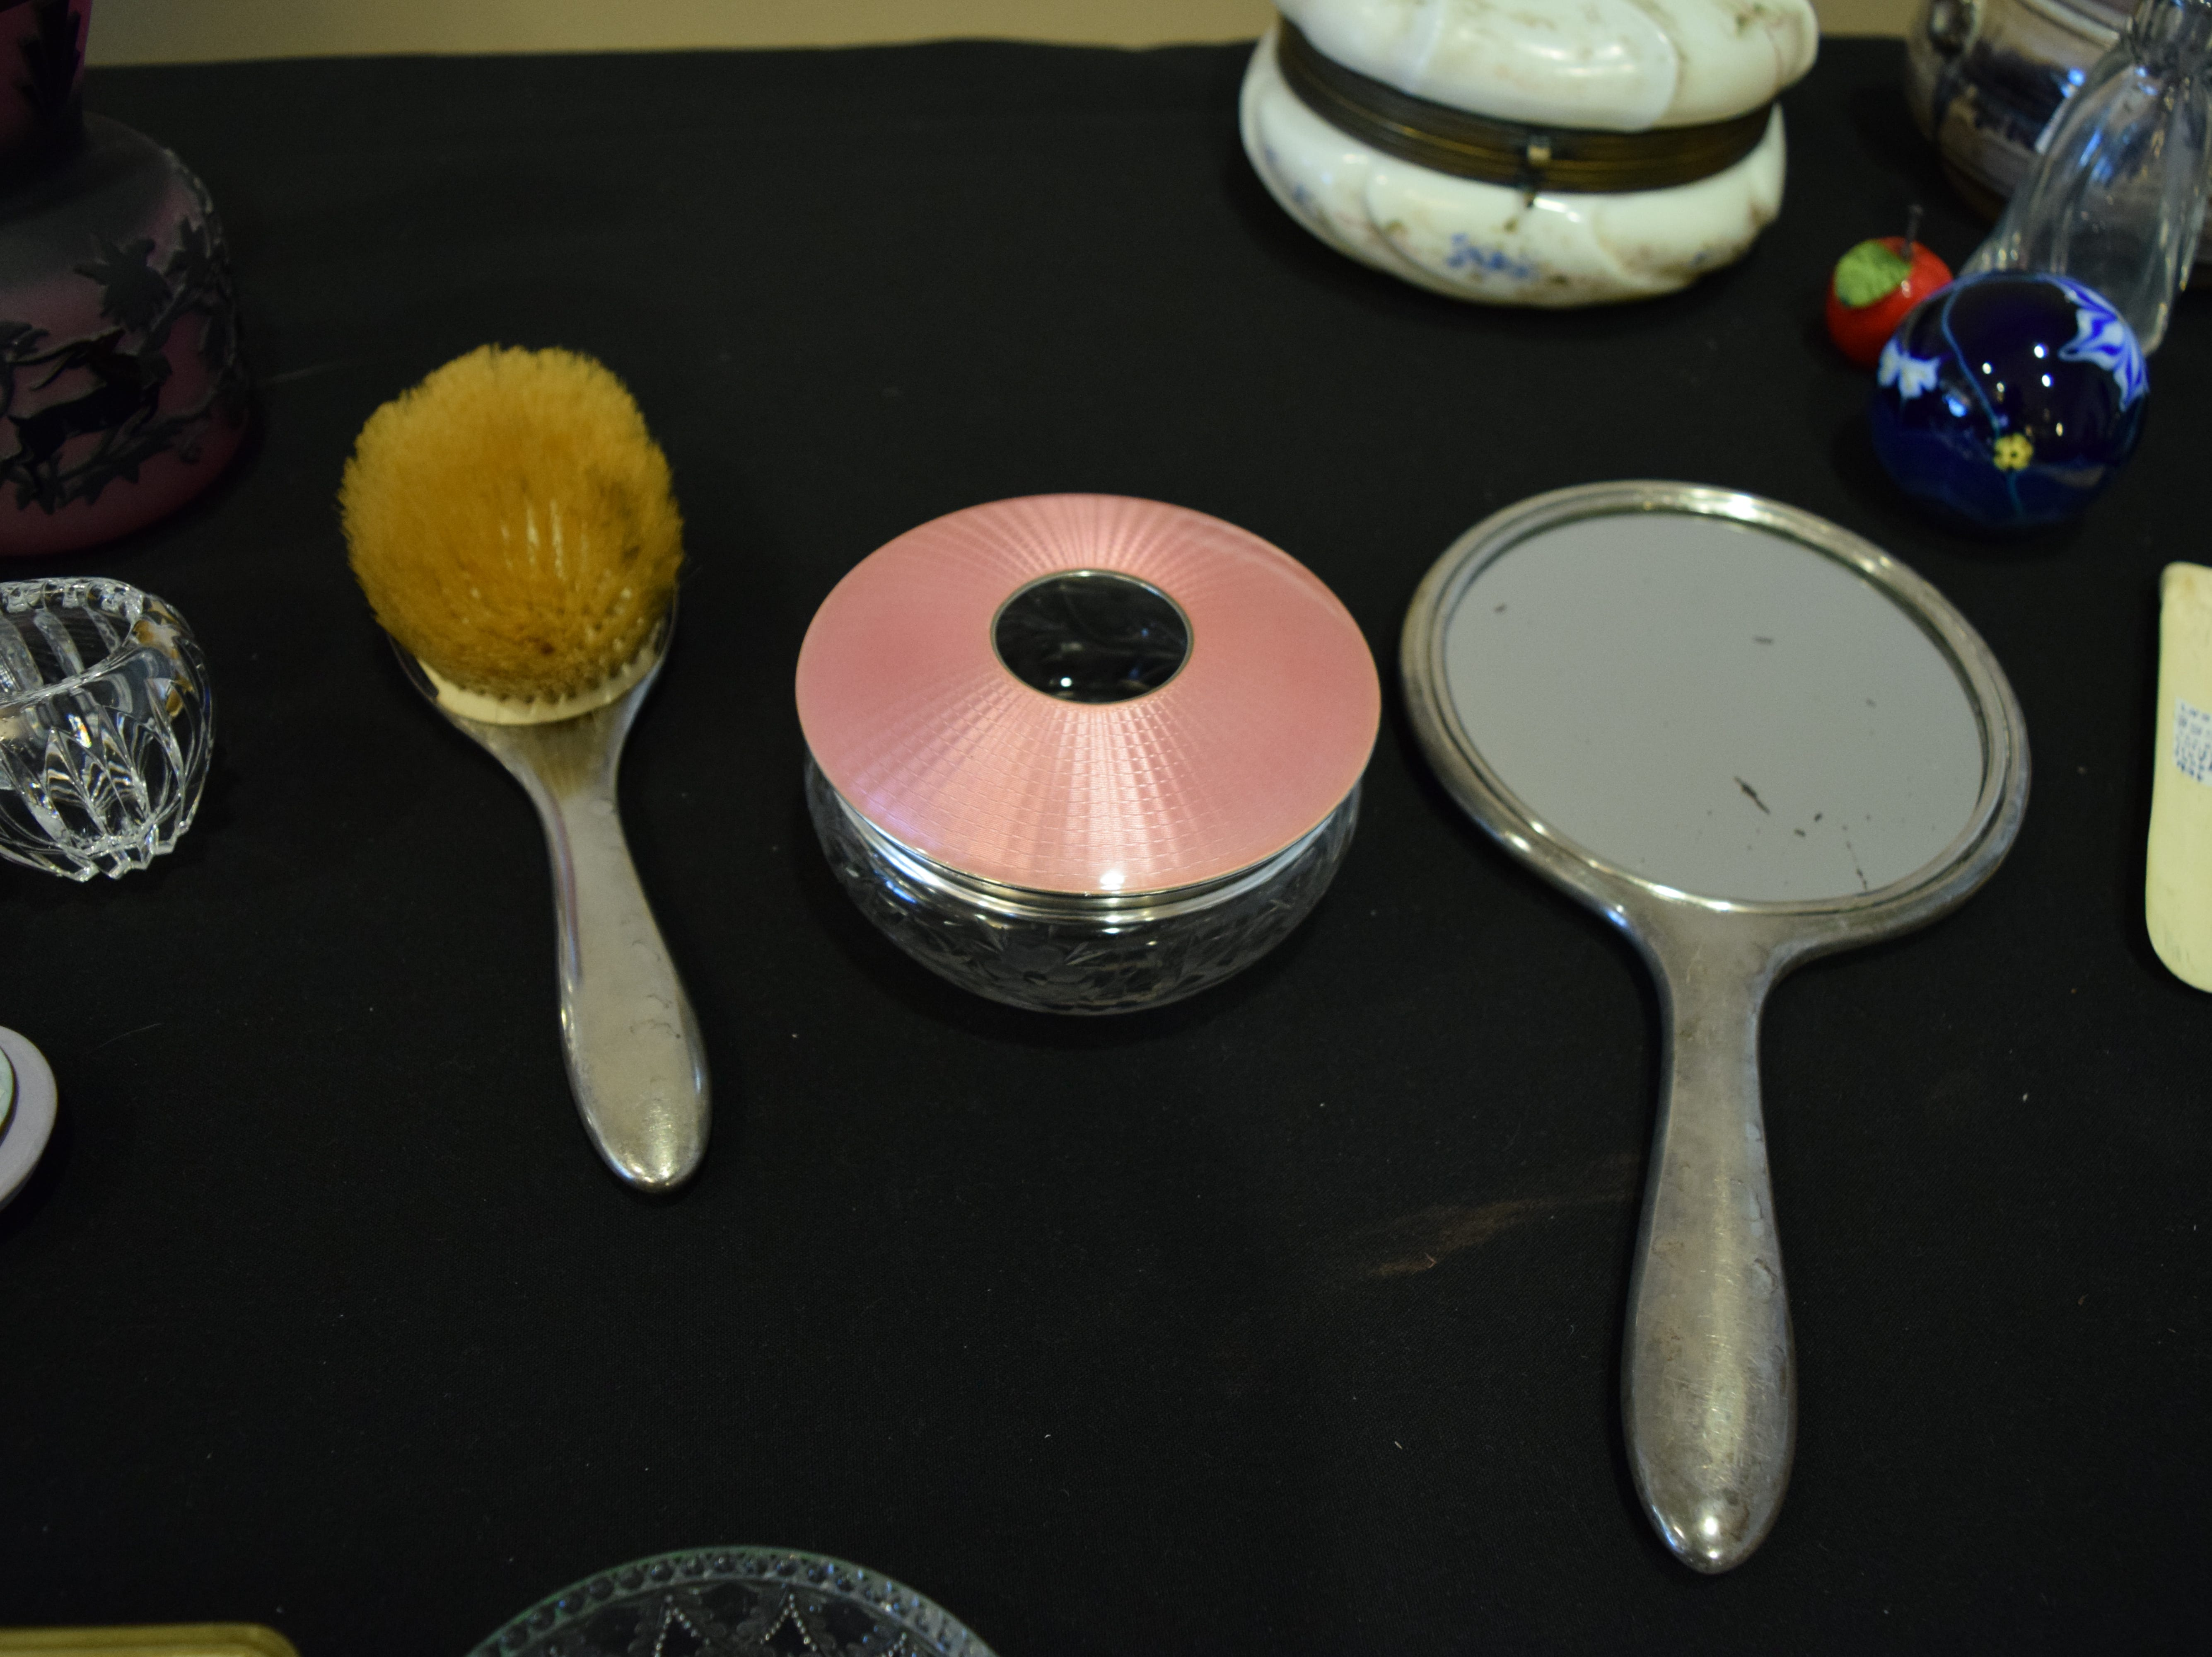 This sterling silver and pink enamel beauty set is estimated to from the 1920s, or thereabouts. The art deco-inspired pieces have a guilloche pattern that was quite common at the time. The bowl in the middle is a hair receiver. Hair receivers were used in the Victorian era and even up until the 1950s. The hair would be collected from brushes and combs and used to create ratts (small balls of hair) that could be used to create volume and fullness in a hairstyle. The extraneous hair was also sometimes used as stuffing for pin cushions and small pillows. — Antiques Treasures Show at the Farm and Ranch Heritage Museum, Jan. 26, 2019.